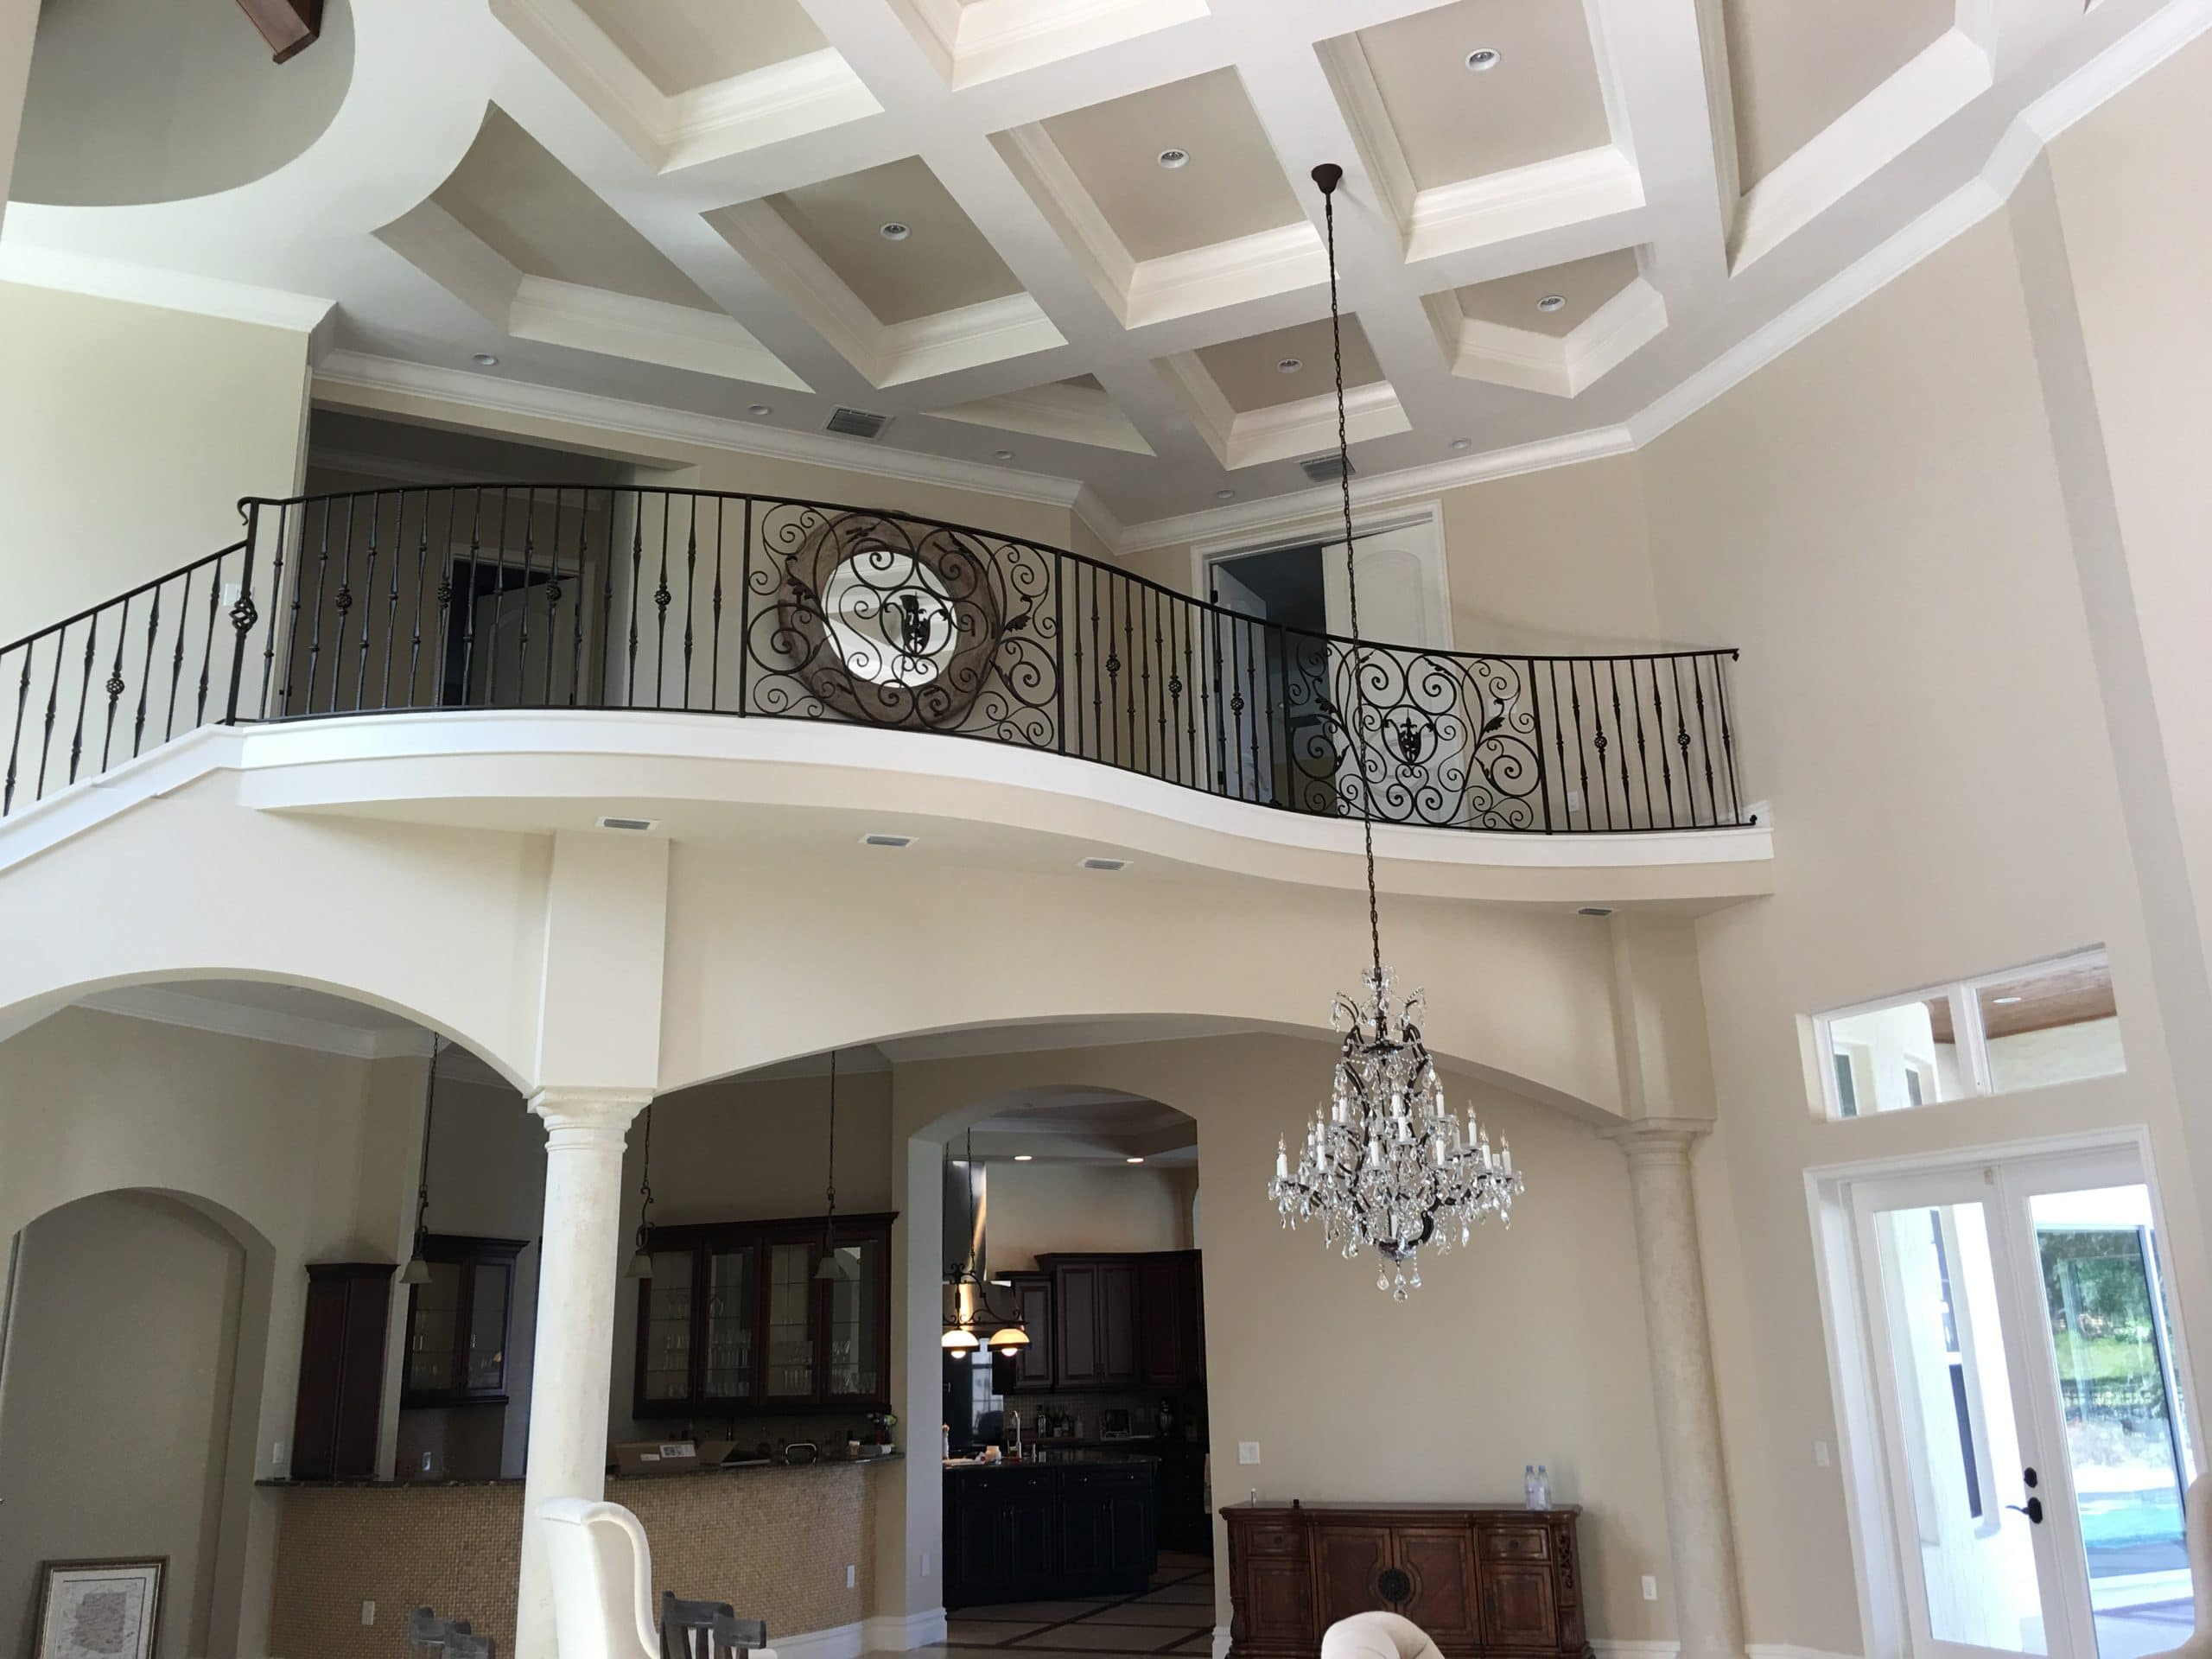 Benjamin Moore Manchester Tan Lightened By 25 Percent. Kylie M Interiors  Edesign And Colour Consulting Services